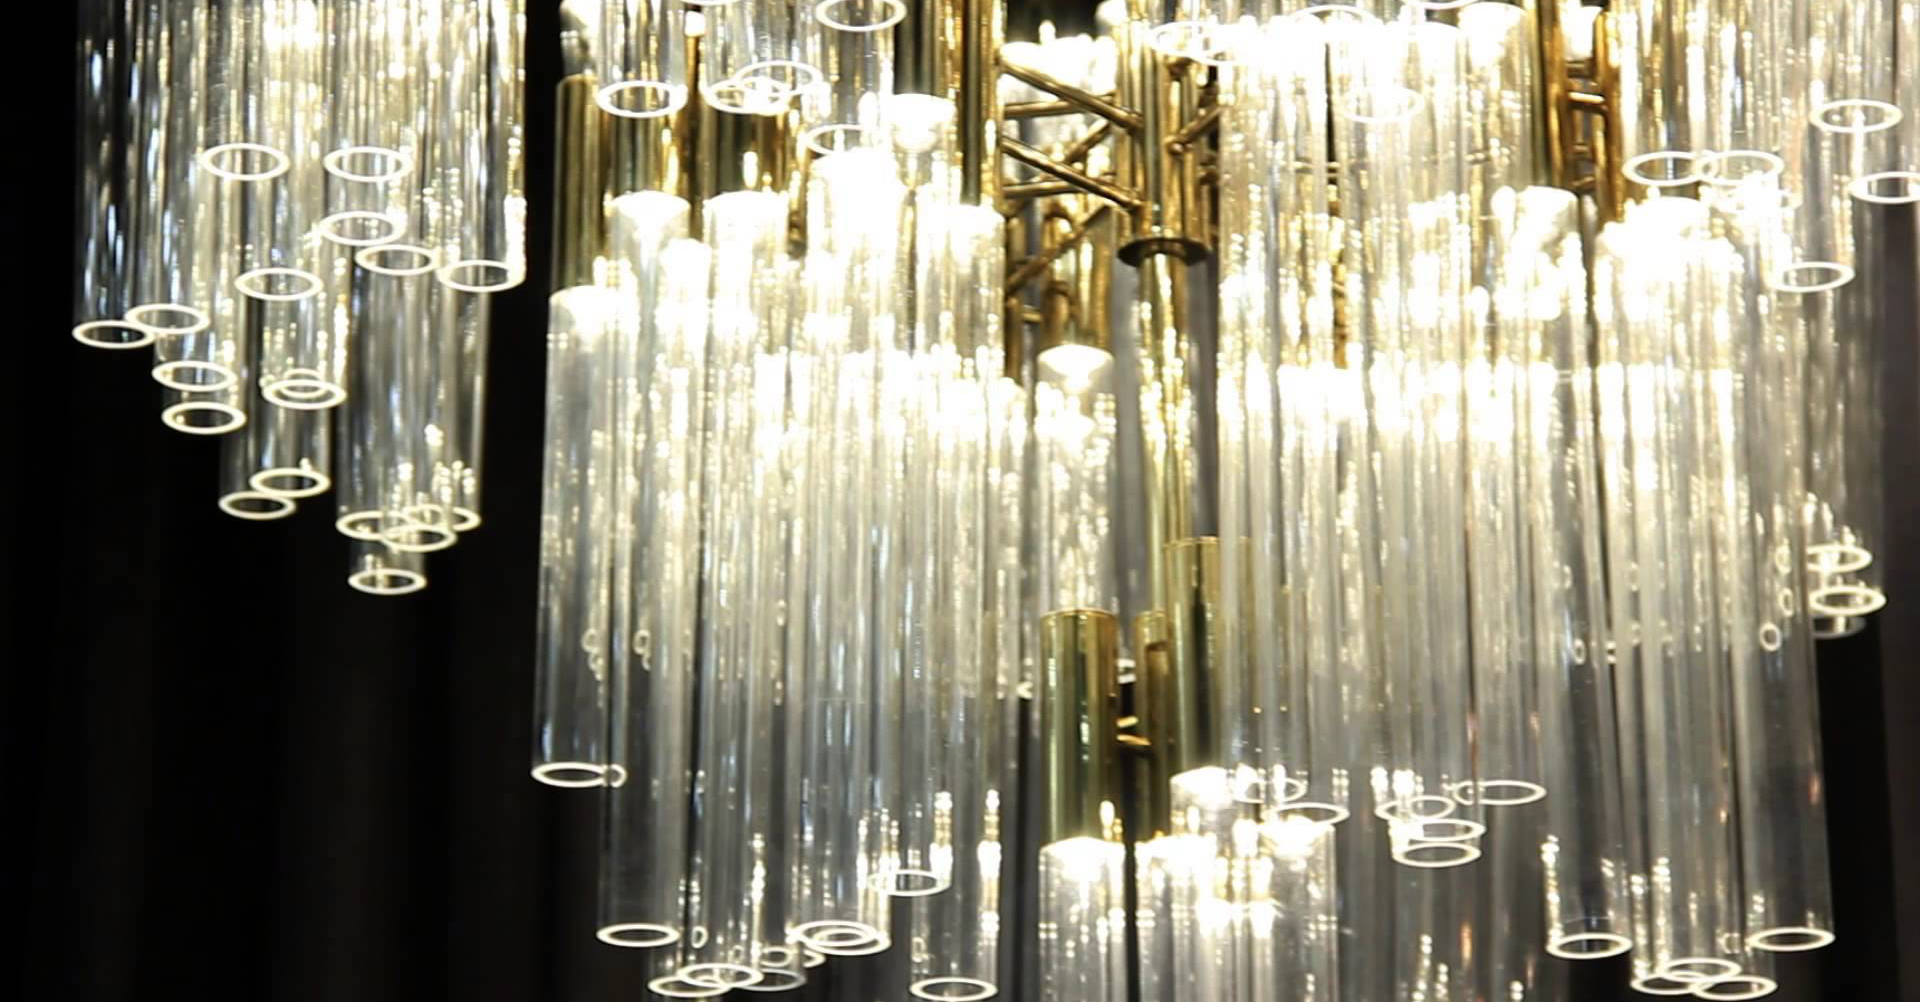 Luxury Pendant Lamps For Your Home Decoration Chandeliers with Crystals Chandeliers with Crystals to sparkle your living room luxxu pendant lamps Chandeliers with Crystals Chandeliers with Crystals to sparkle your living room luxxu pendant lamps